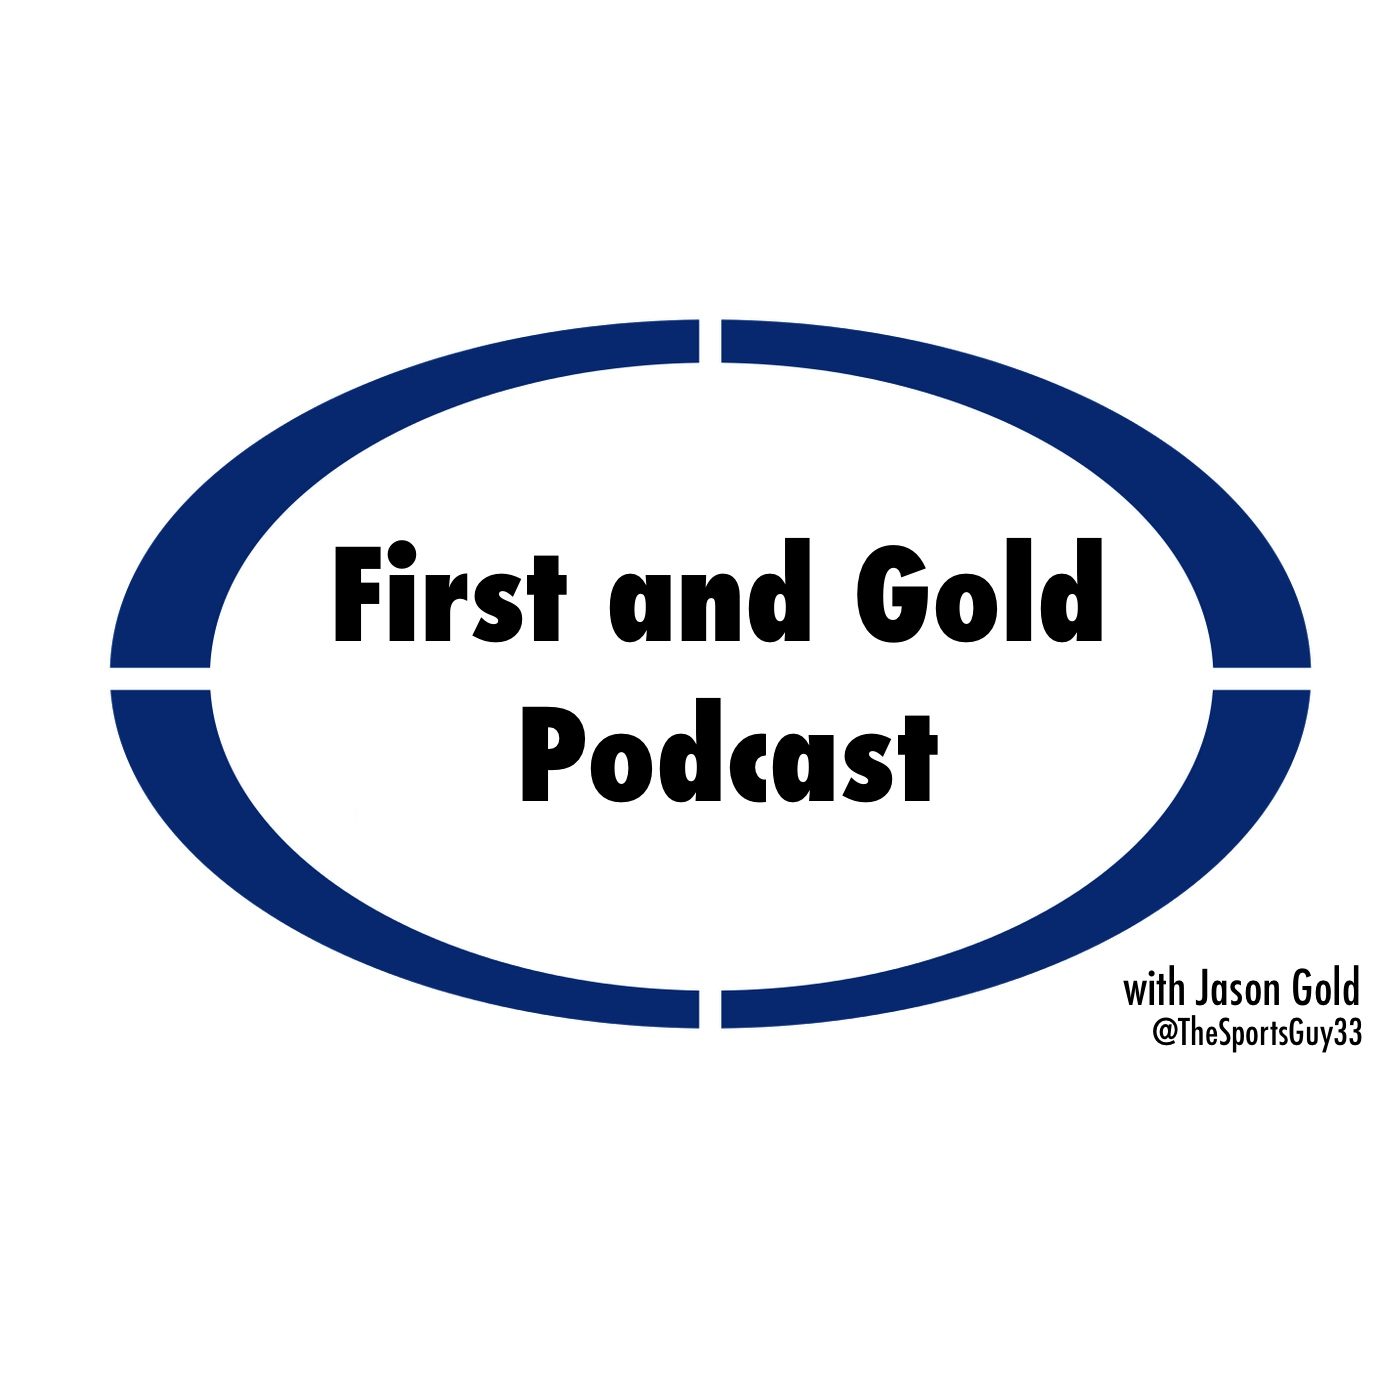 First and Gold Podcast